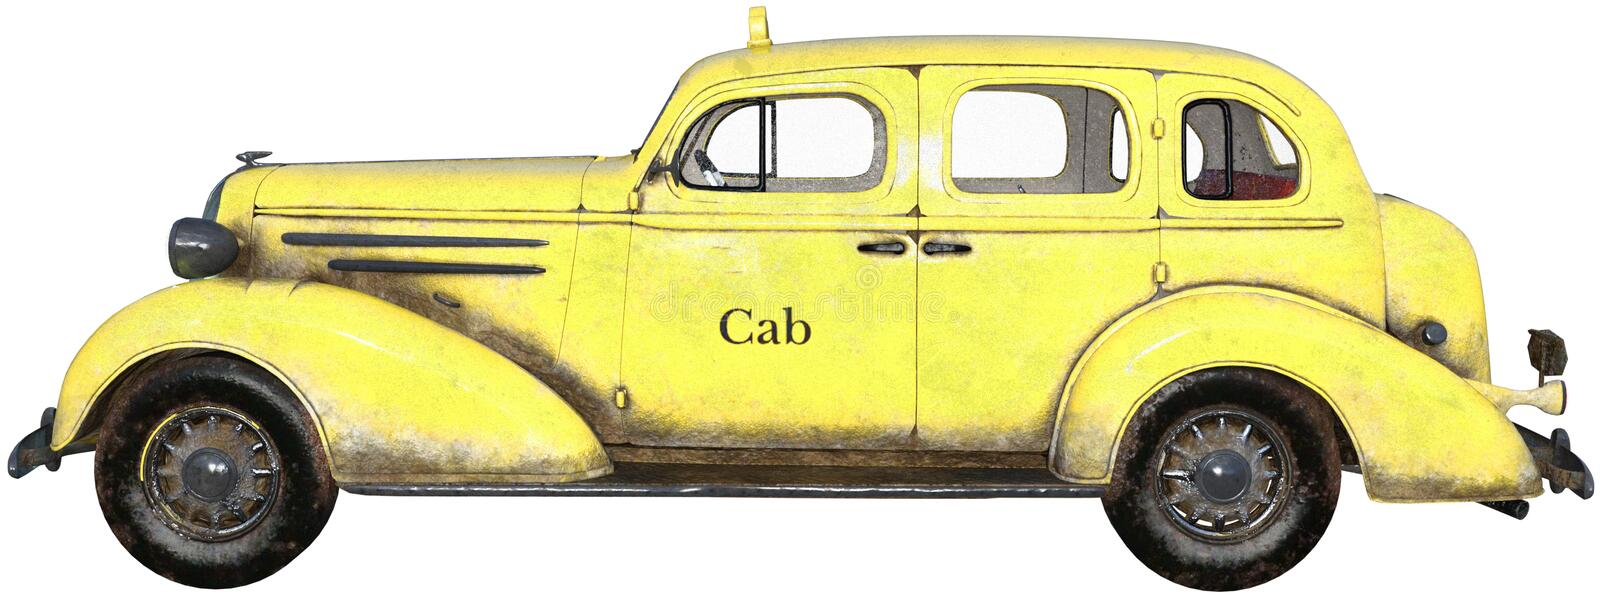 Old Vintage Retro Taxi Cab Isolated. Illustration of an old vintage retro yellow taxi cab automobile. isolated on white. PNG file available stock illustration